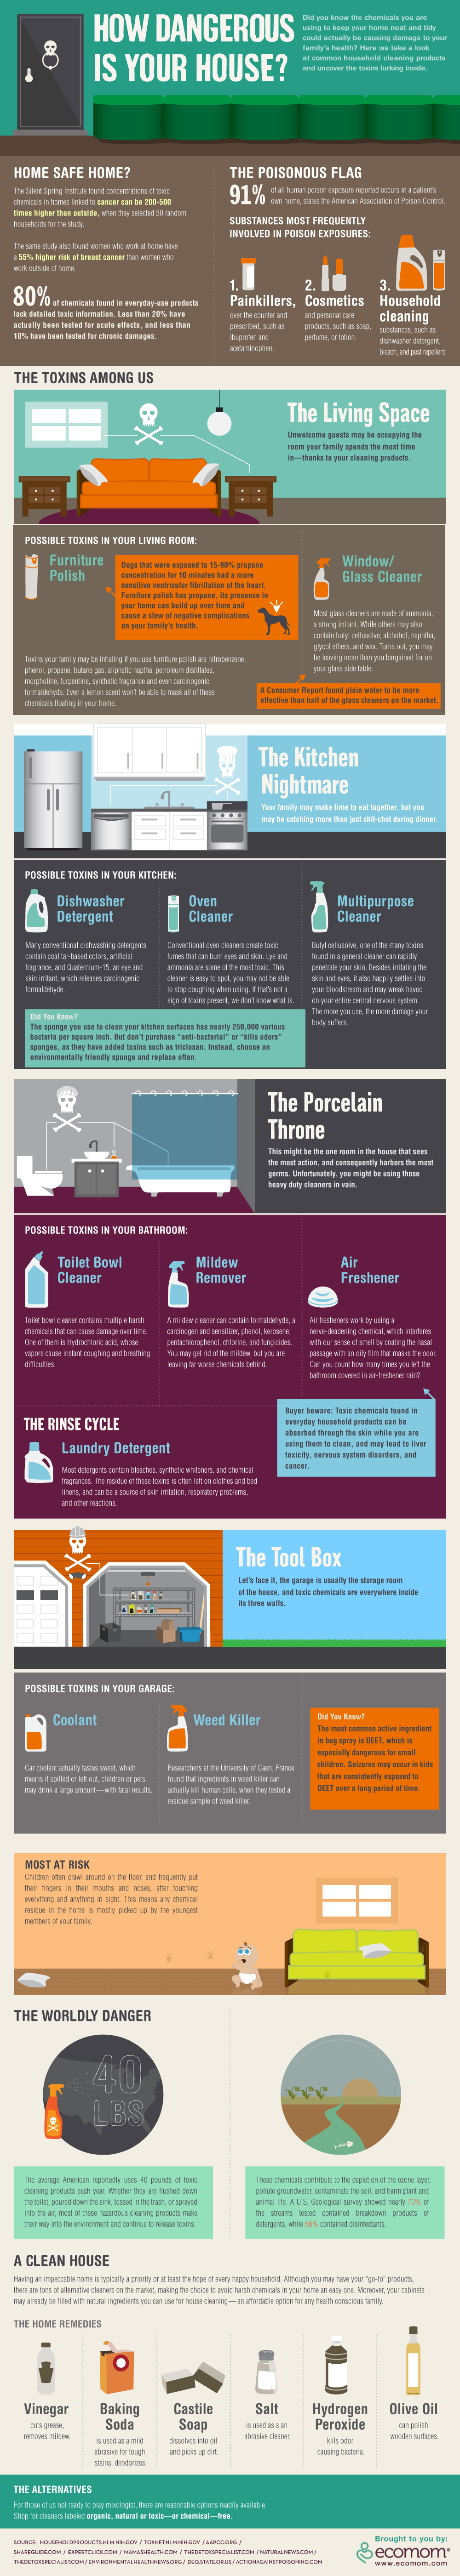 How Dangerous Is Your House? infographic